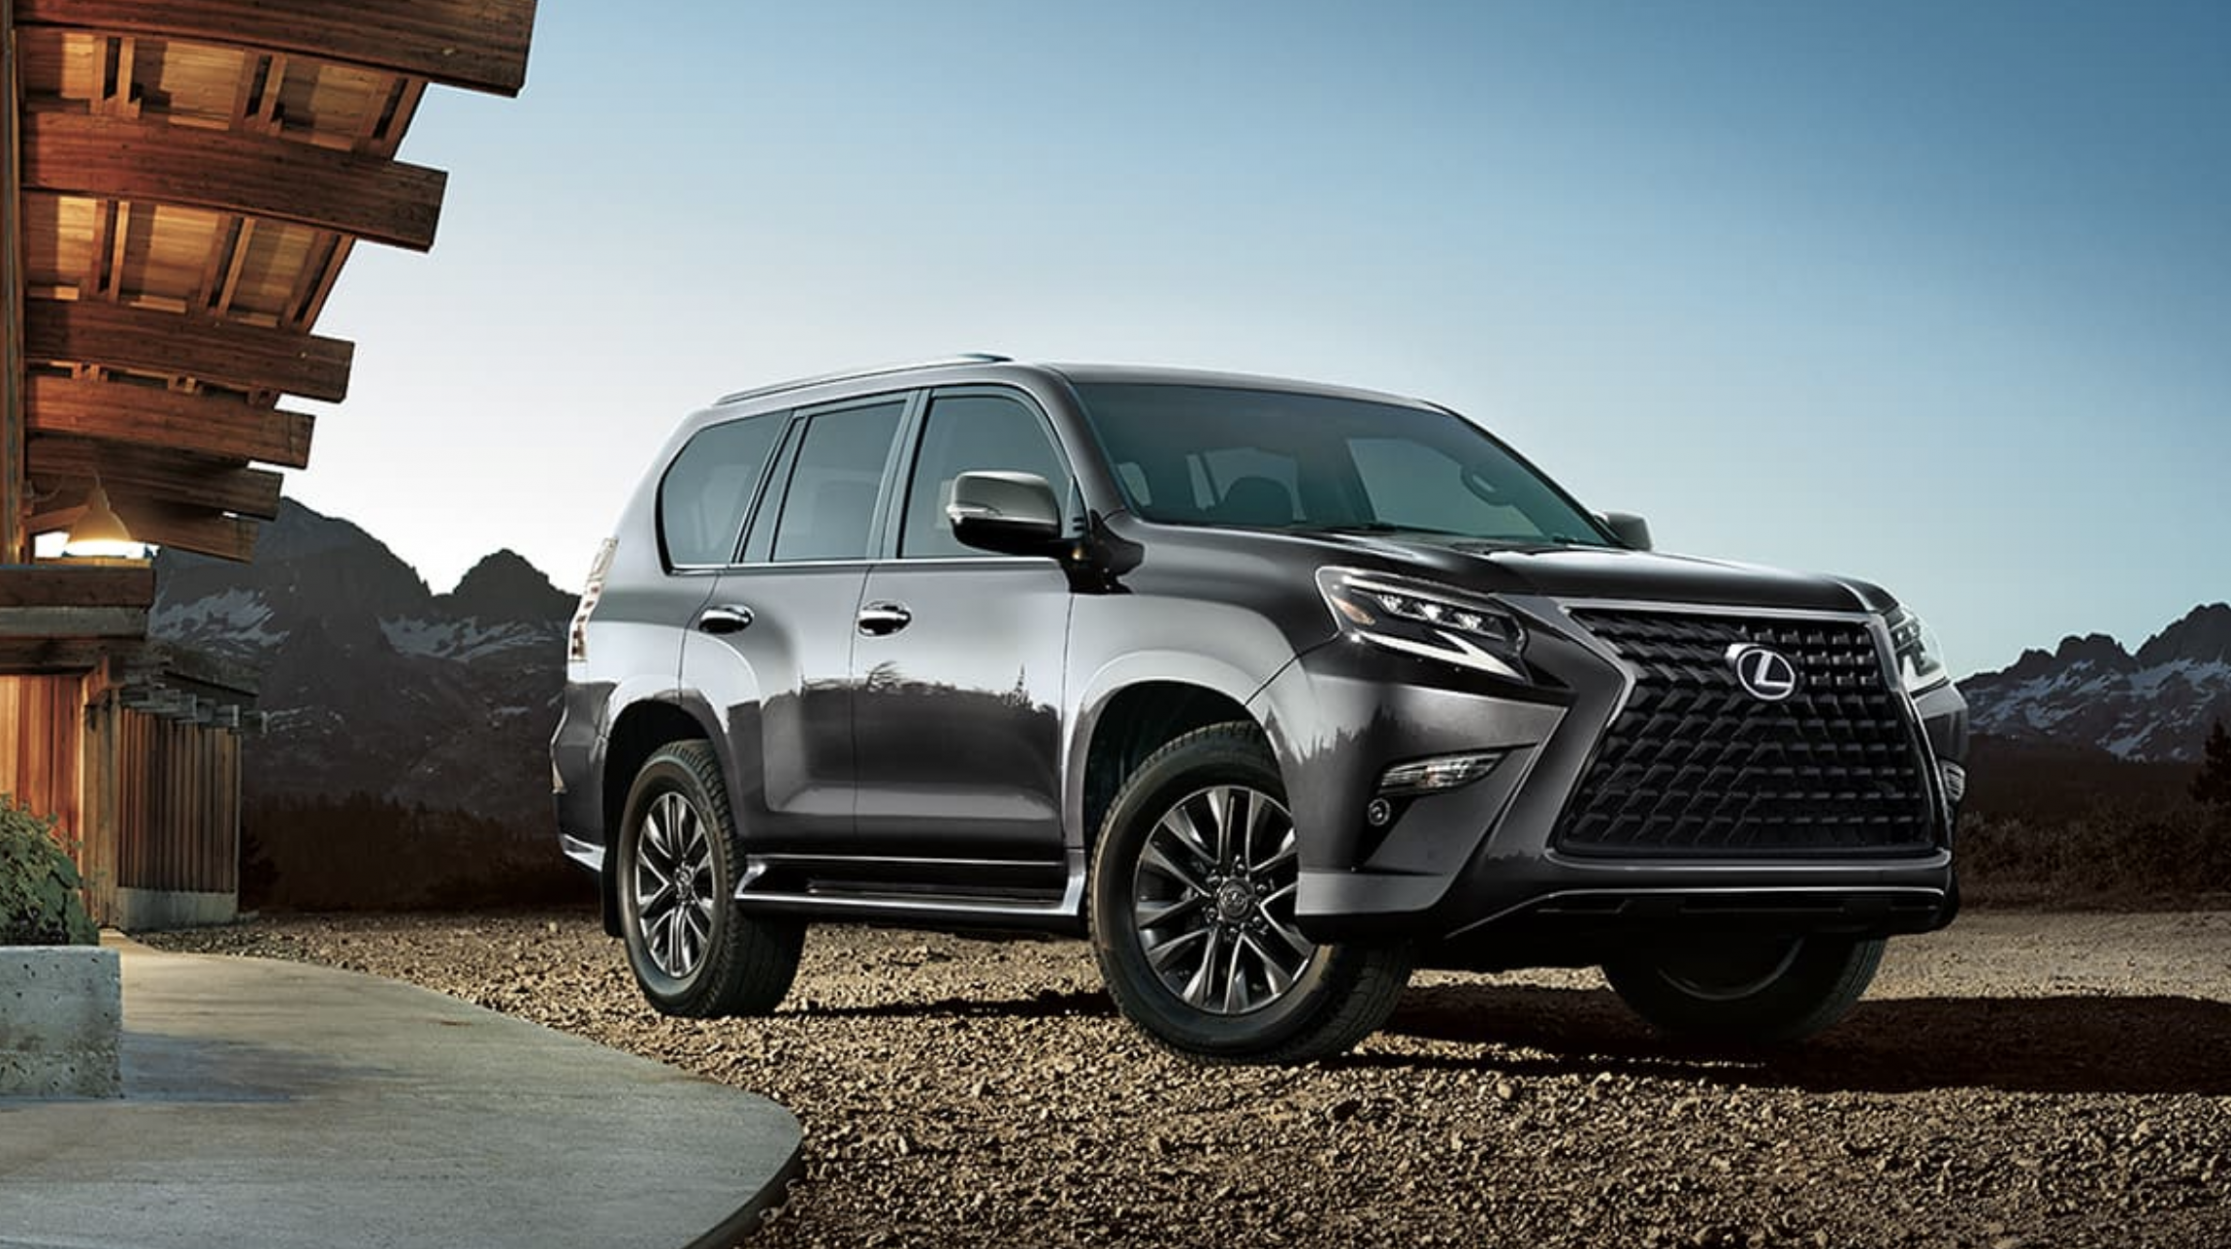 5 Lexus GX Review, Pricing, and Specs - Lexus Gx Body Style Change 2021